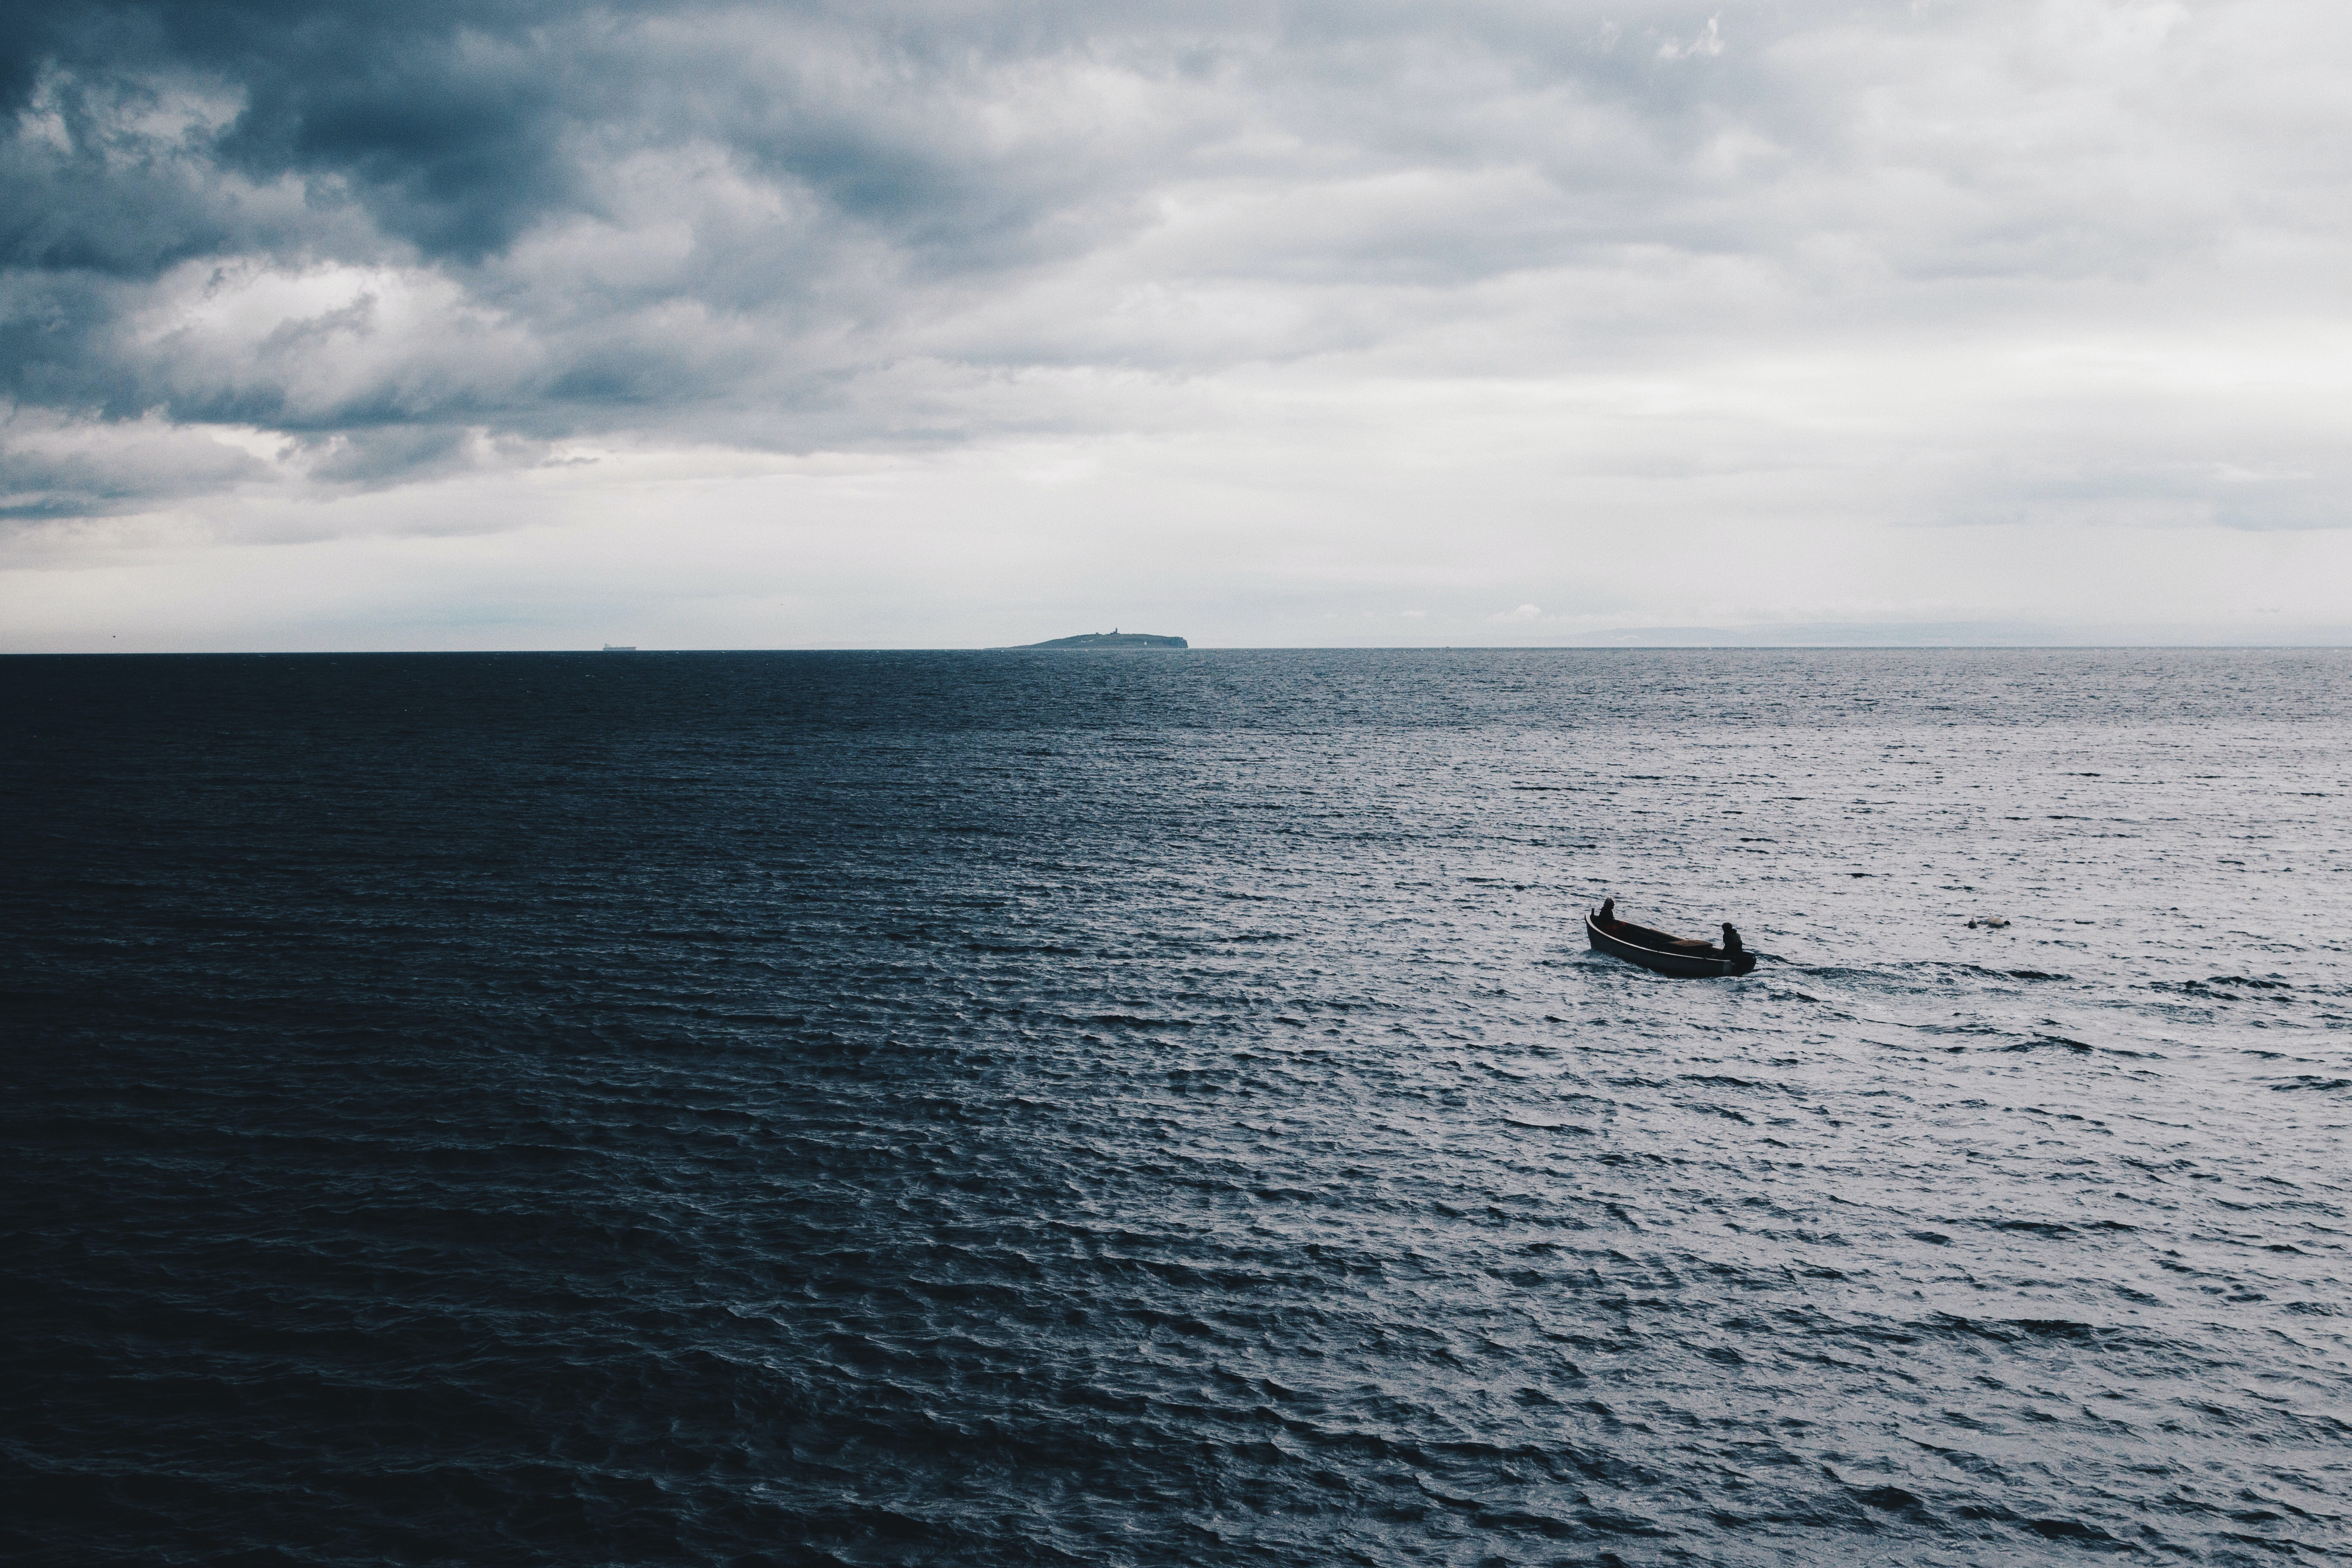 low-light photography of boat on ocean water under cloudy sky